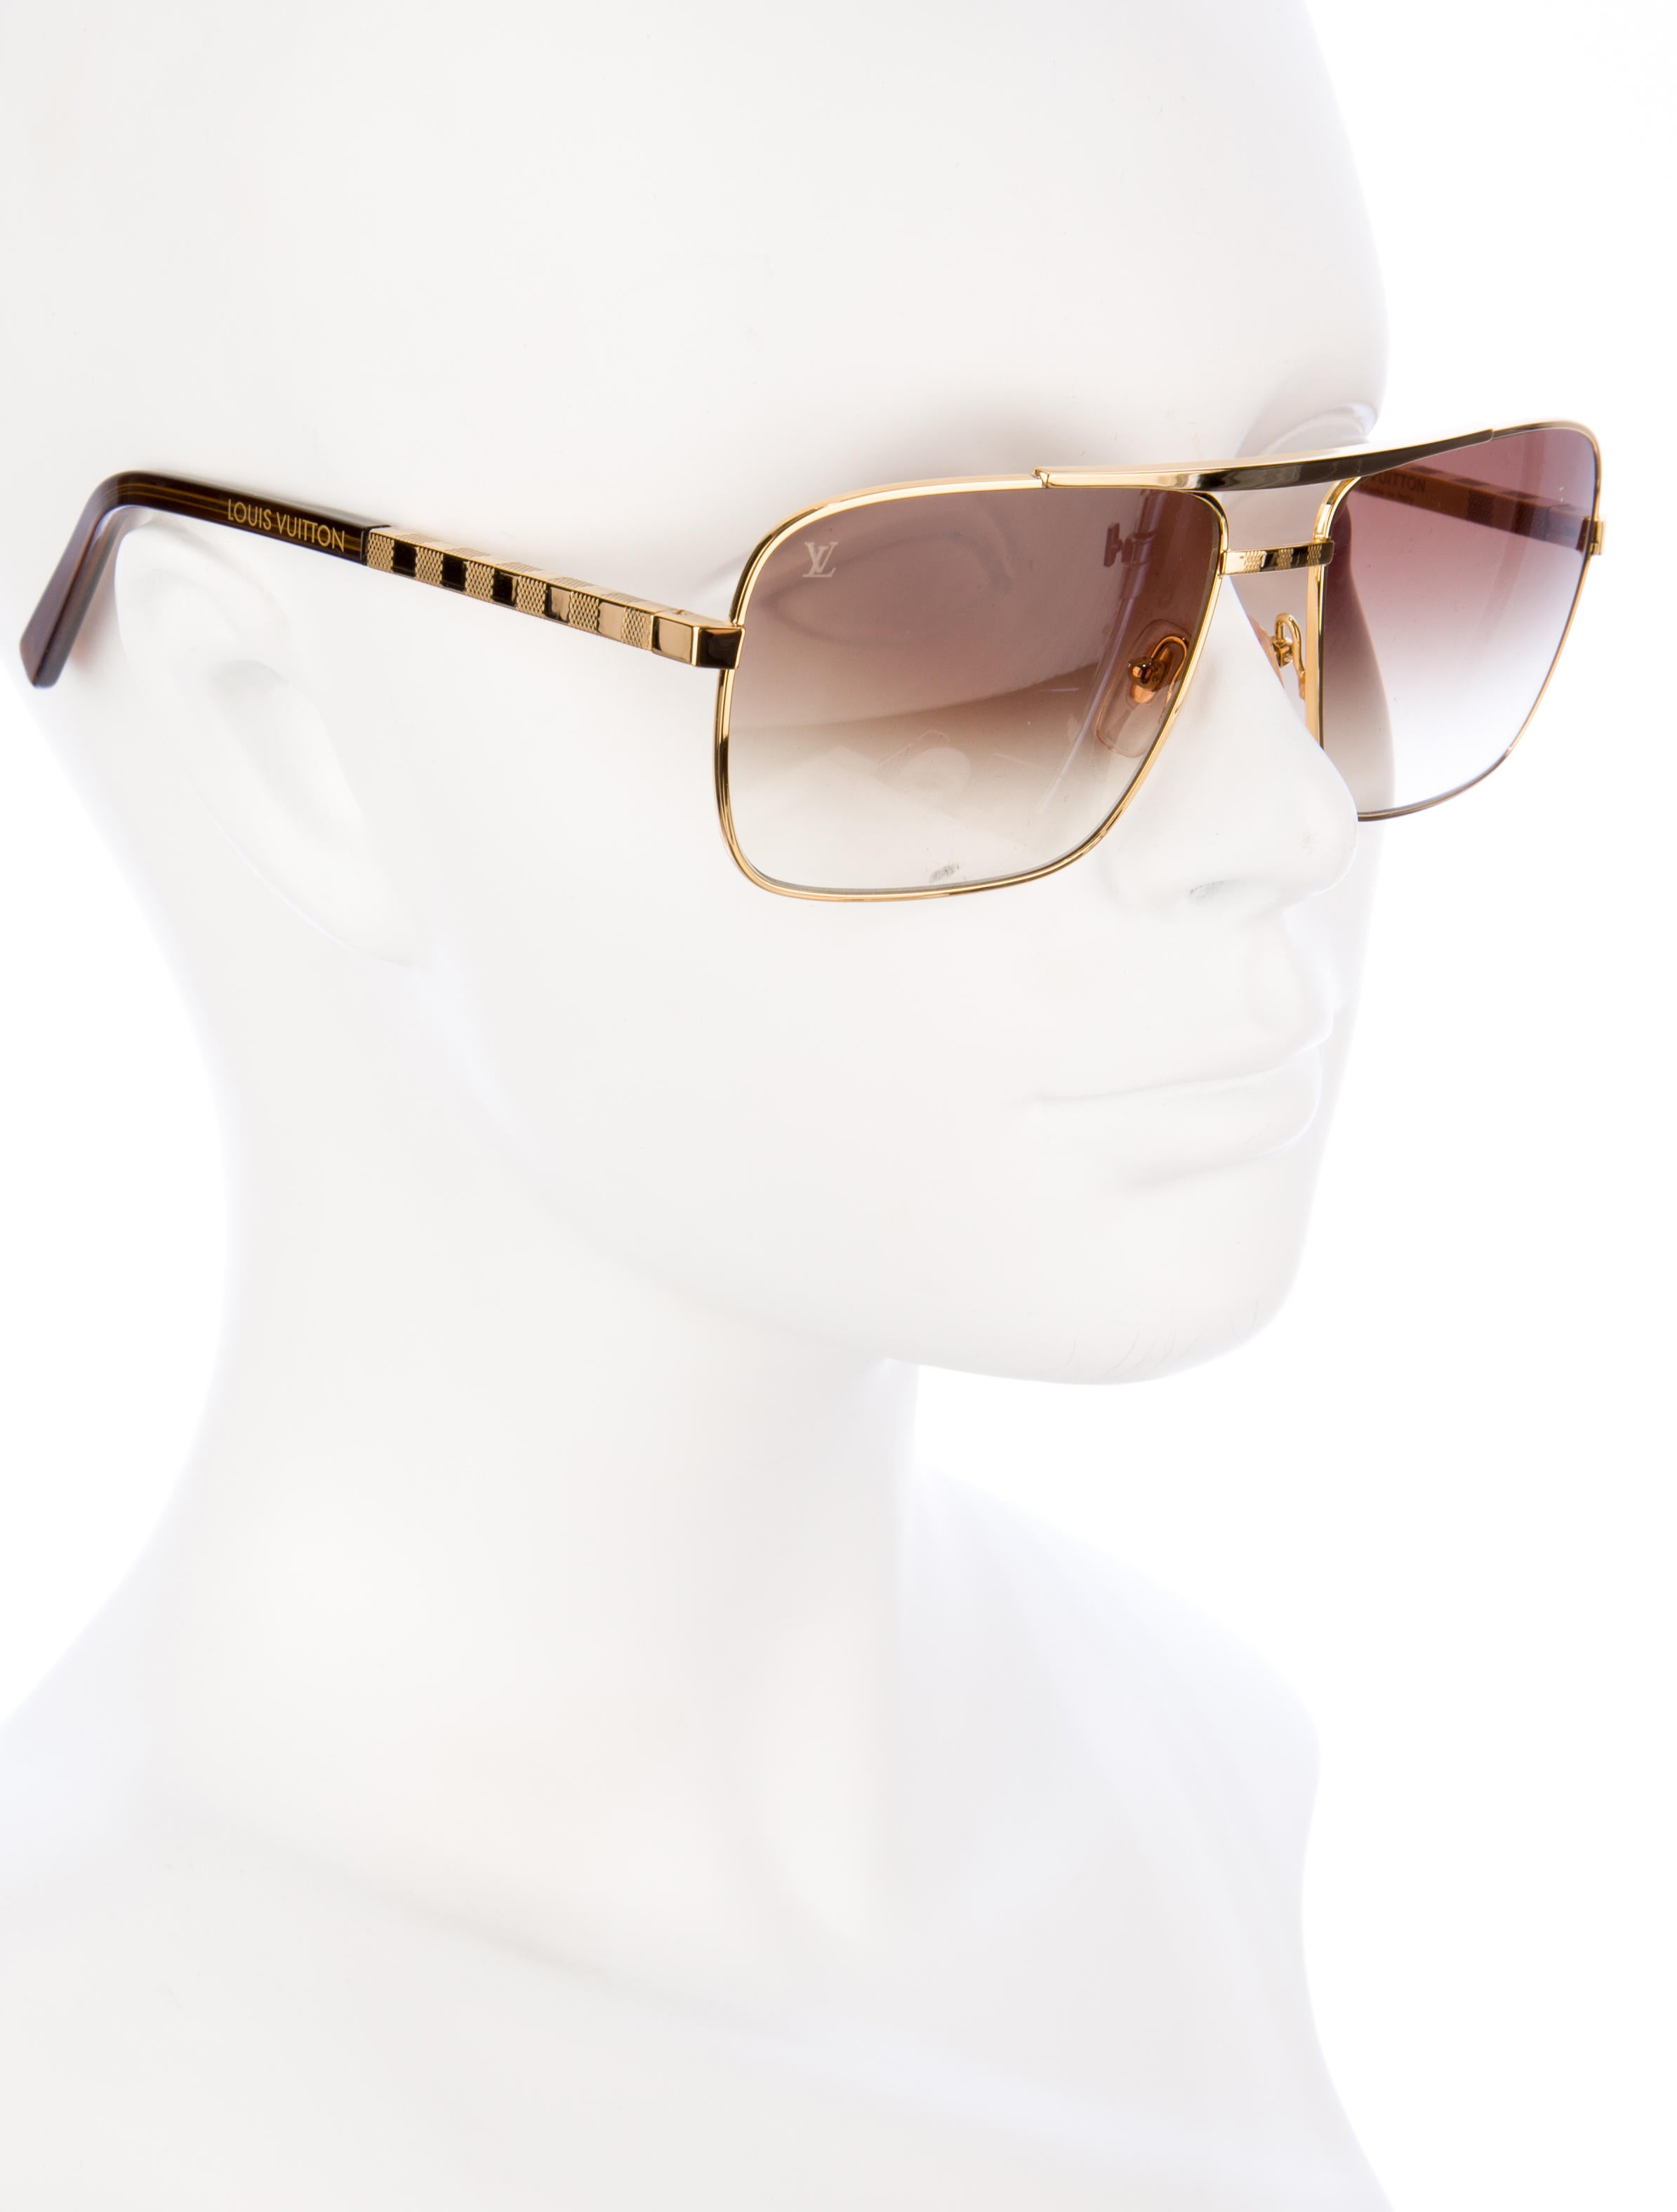 2c304bab0122 Louis Vuitton Attitude Sunglasses Fake